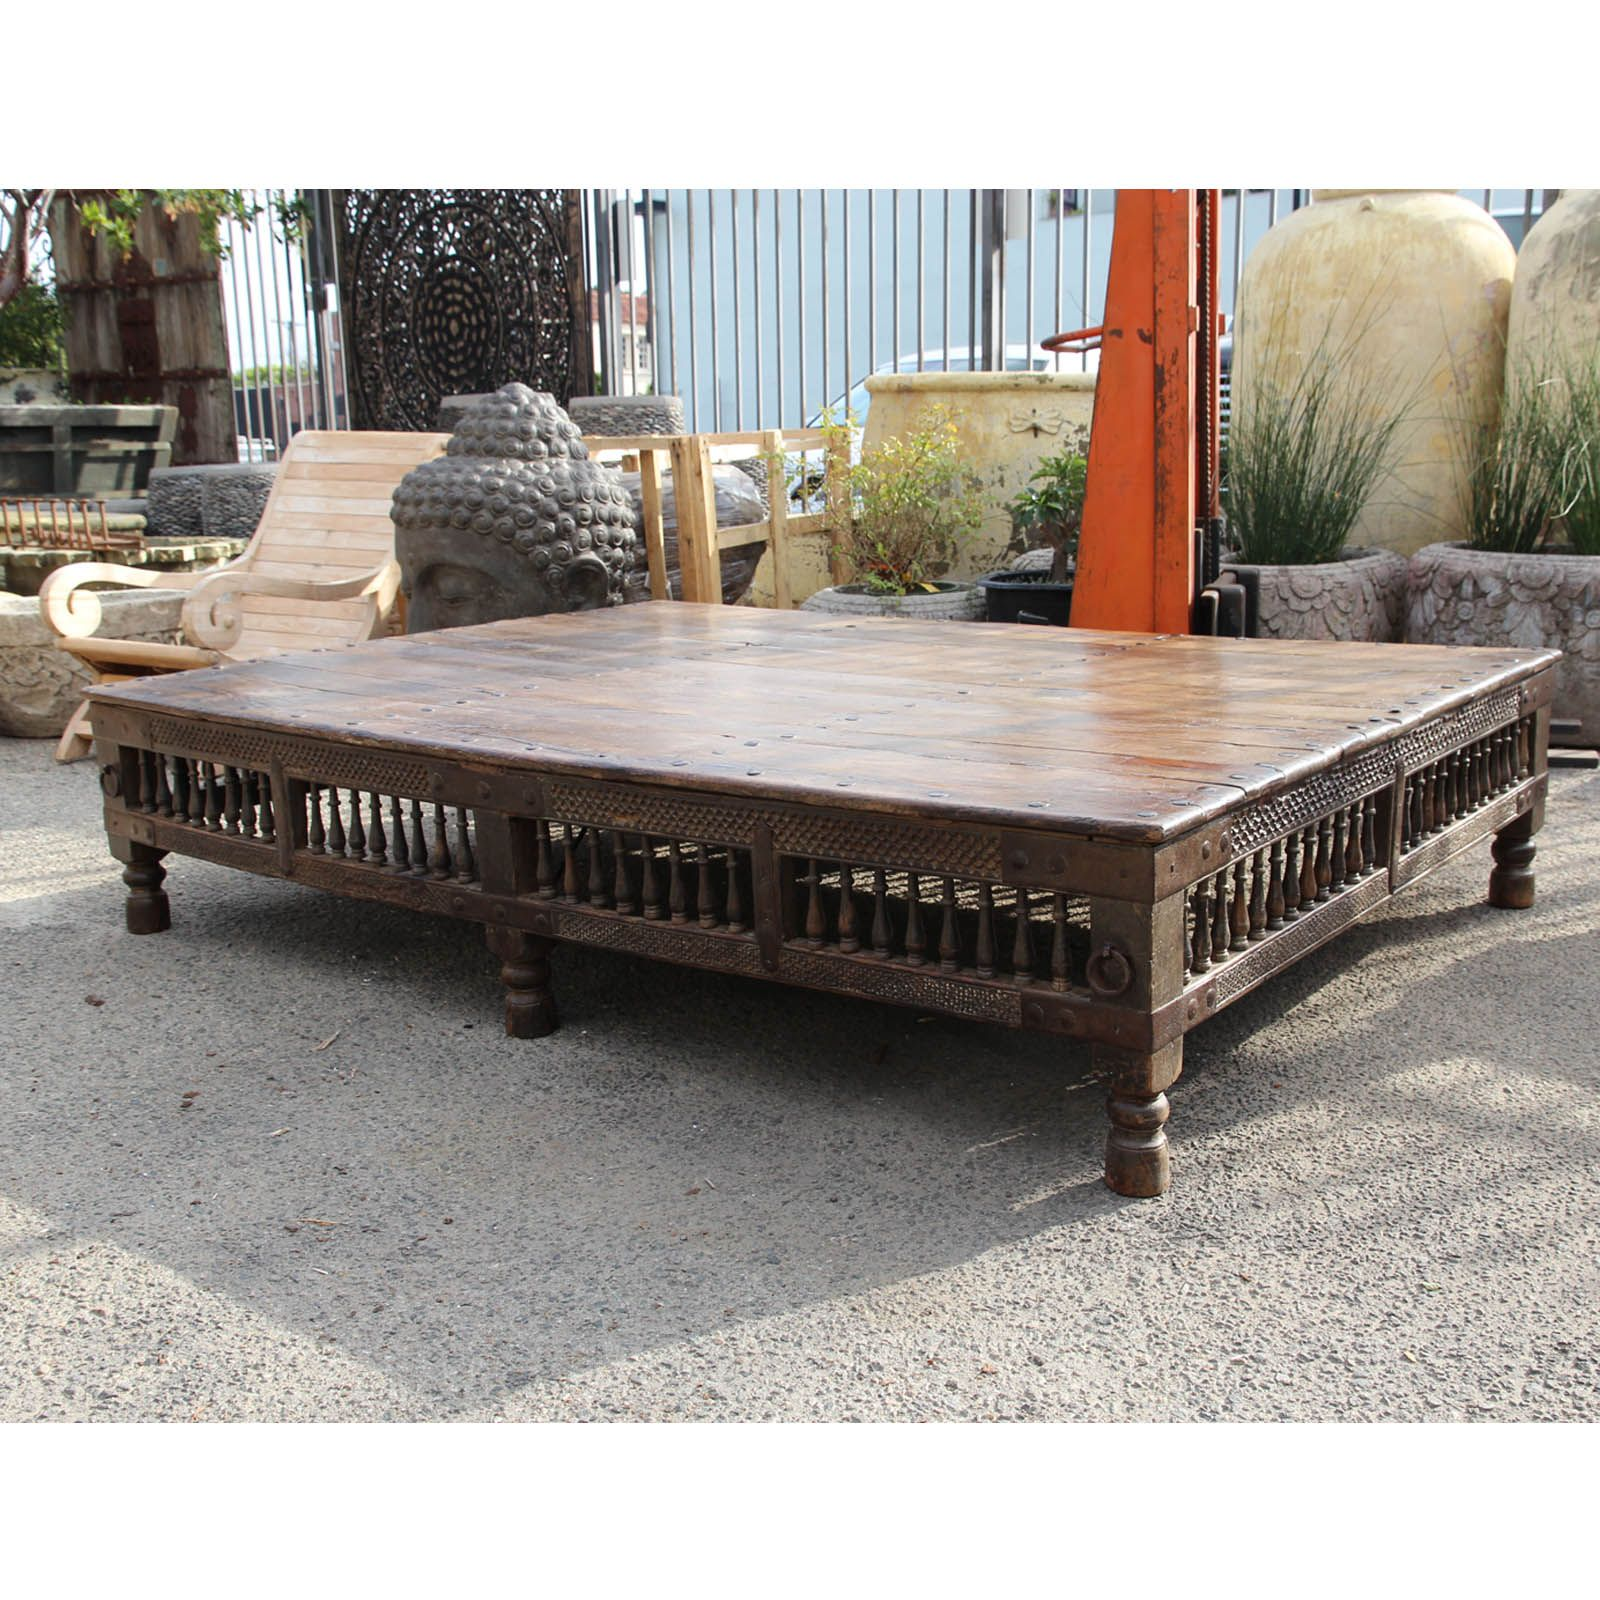 Antique Indian Thaket Coffee Table Teak Wood Construction With